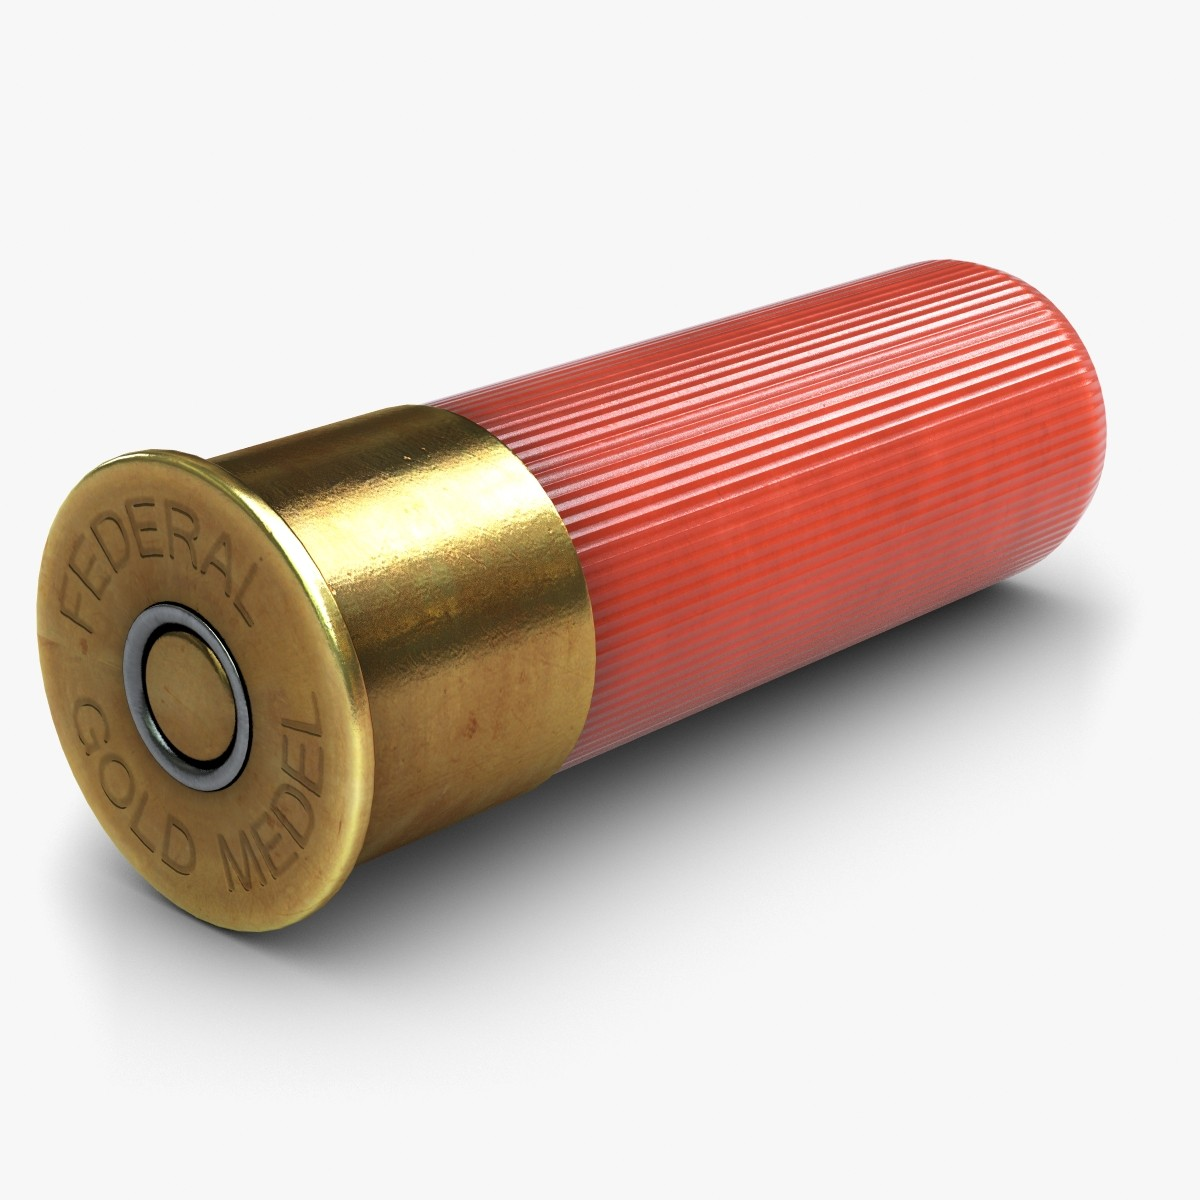 What is The Best Shotgun Shell For a Beginner Sporting Clay Shooter?